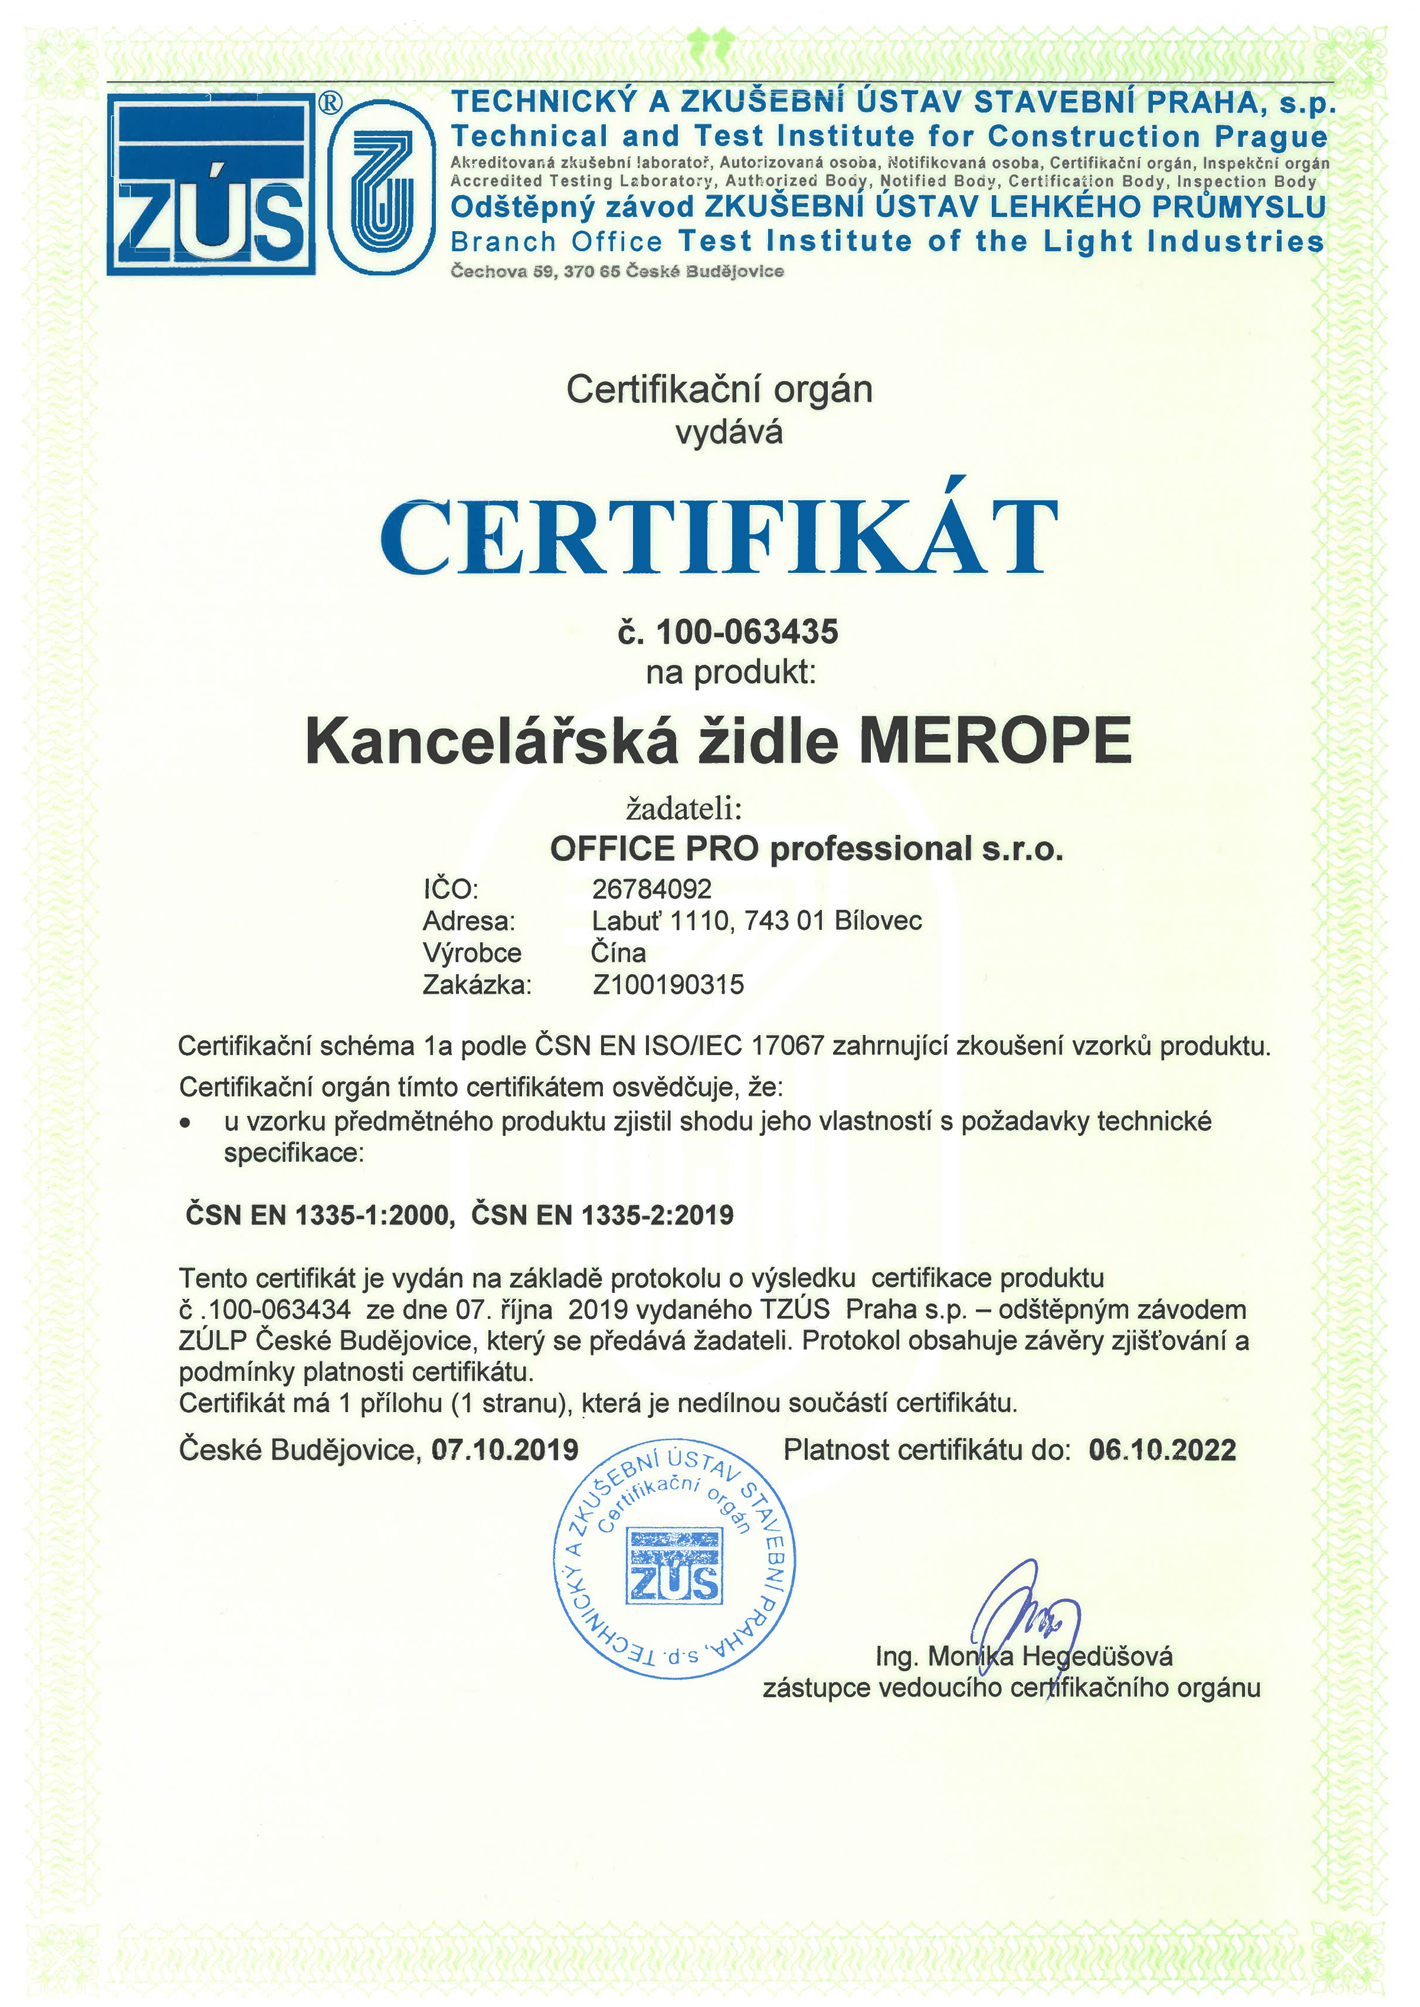 http://www.officepro.cz/data/files/certifikat-merope-2019.jpg